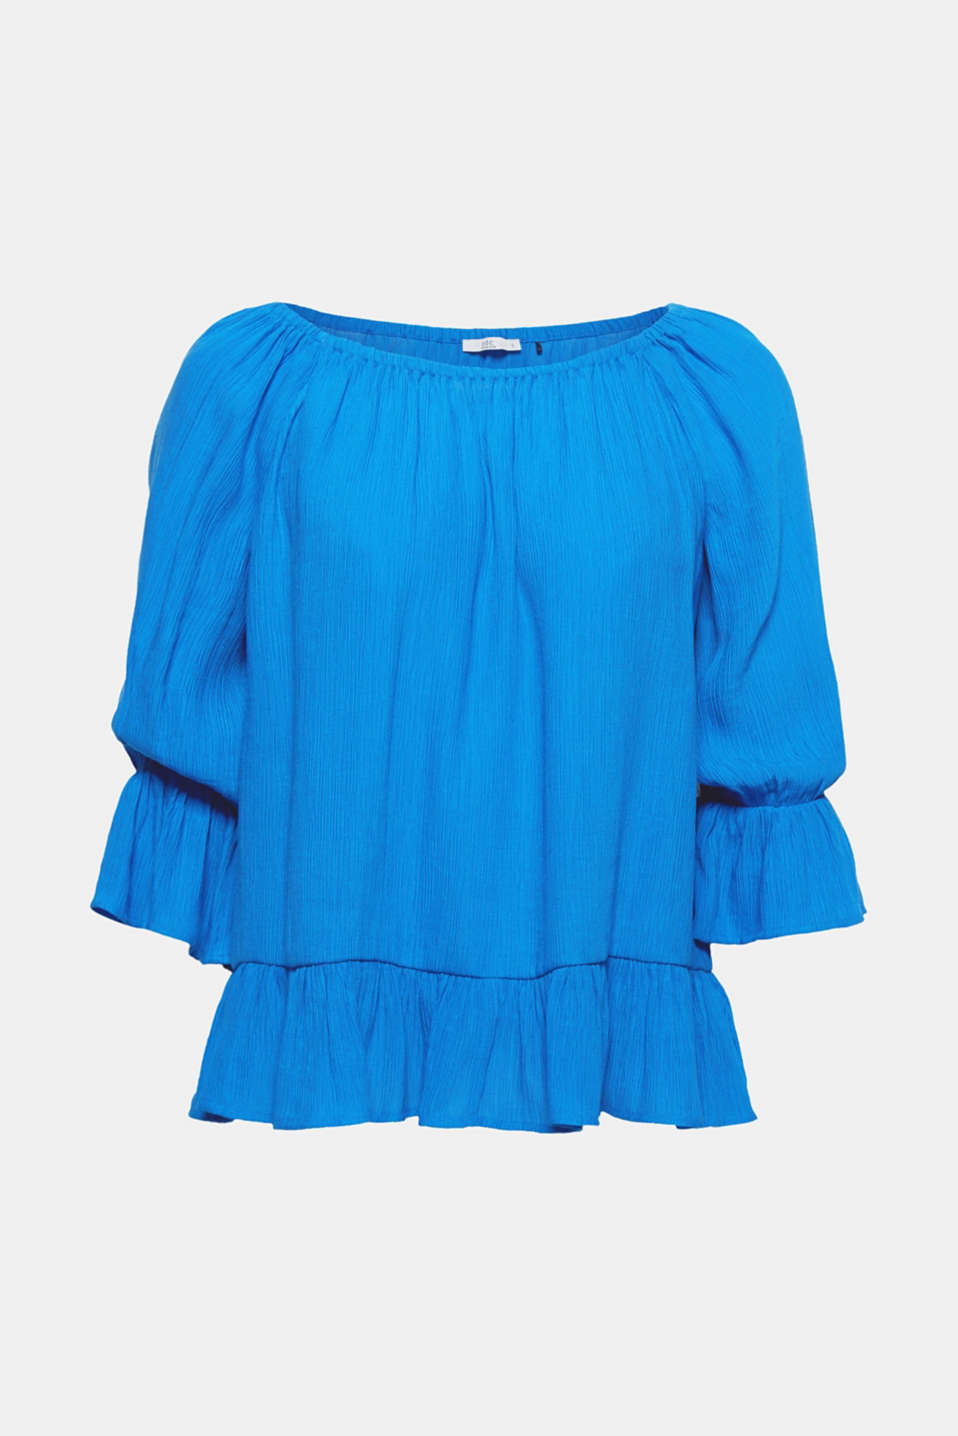 Fine pleats, swirling flounces and an elasticated, wide Carmen neckline give this semi-sheer crinkle blouse its pretty look.